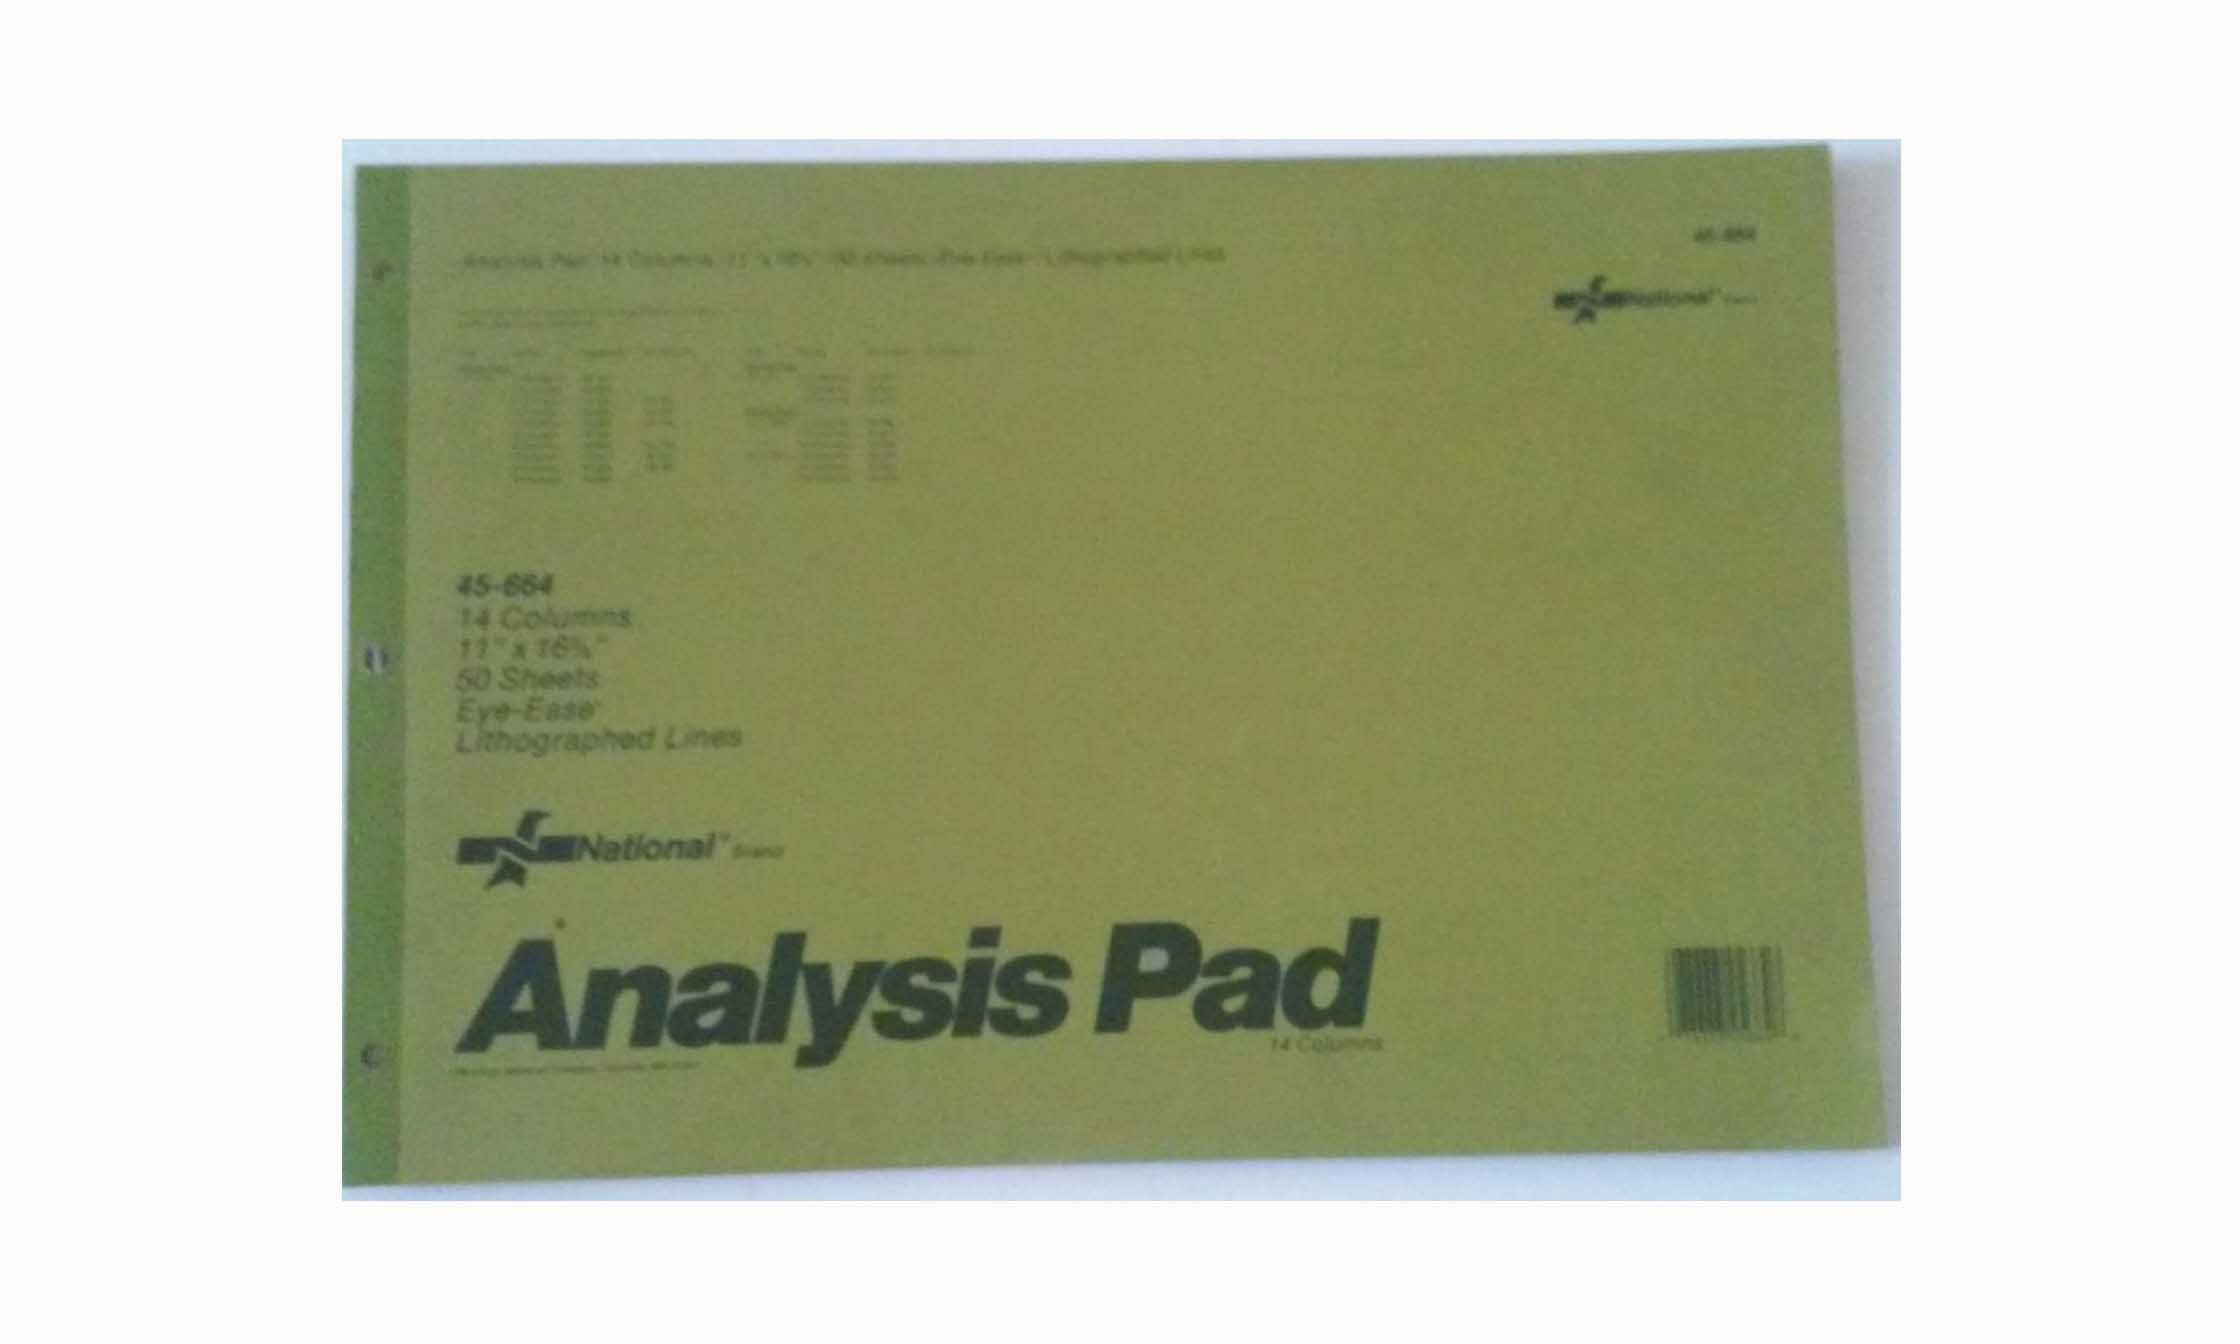 National 45-664 Analysis Pad 14 Columns 11'' x 16 3/8'' 50 Sheets Lined